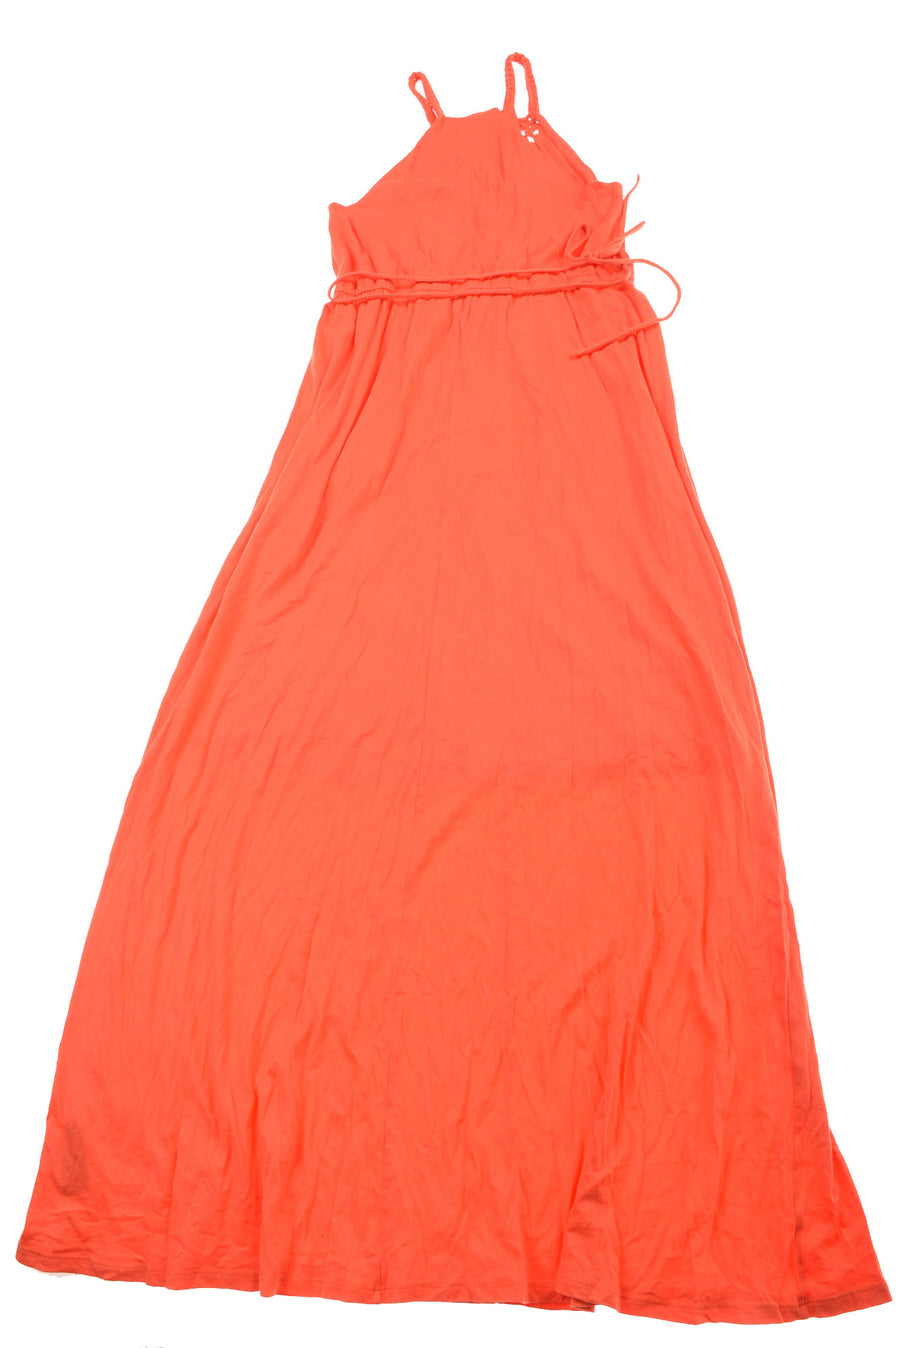 USED Ralph Lauren Women's Dress Medium Orange